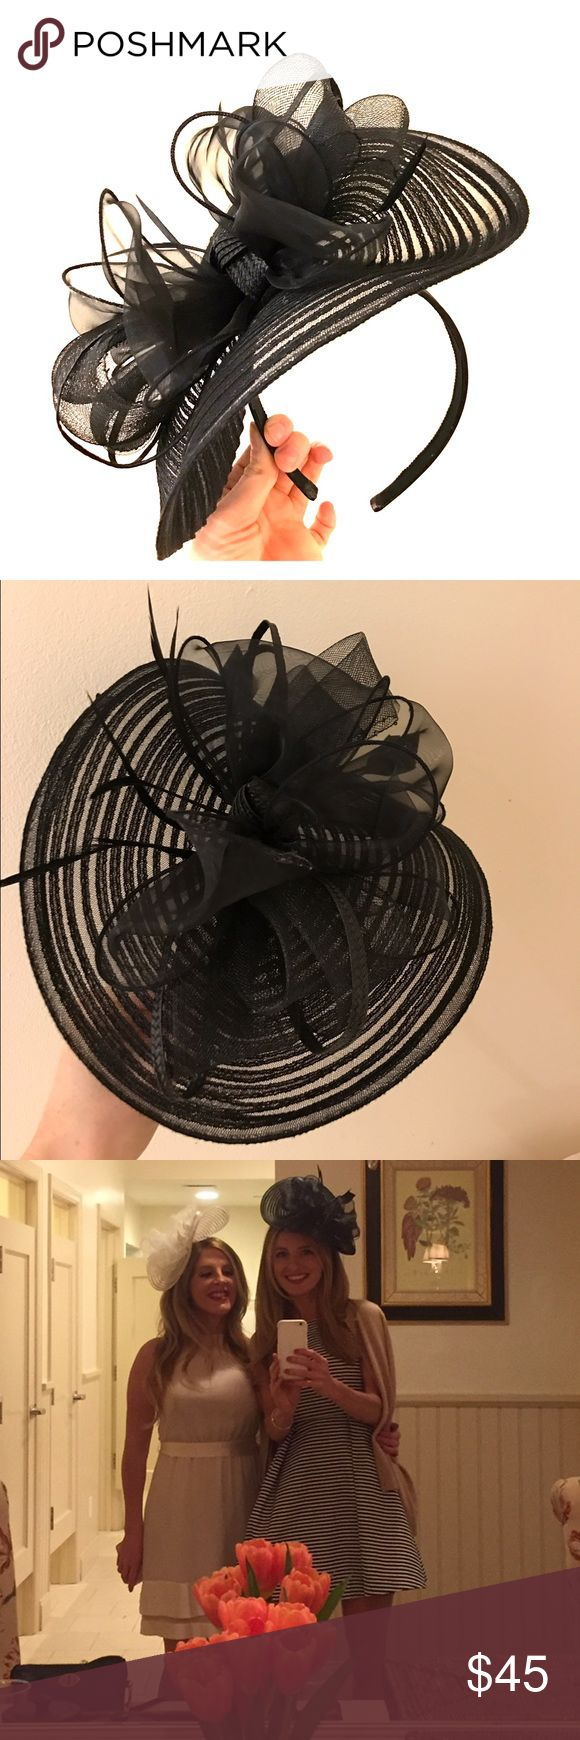 Black Fascinator Headband Black Fascinator Headband, perfect for your Kentucky Derby party...perfect condition. Bought new, custom made, worn once. Accessories Hats